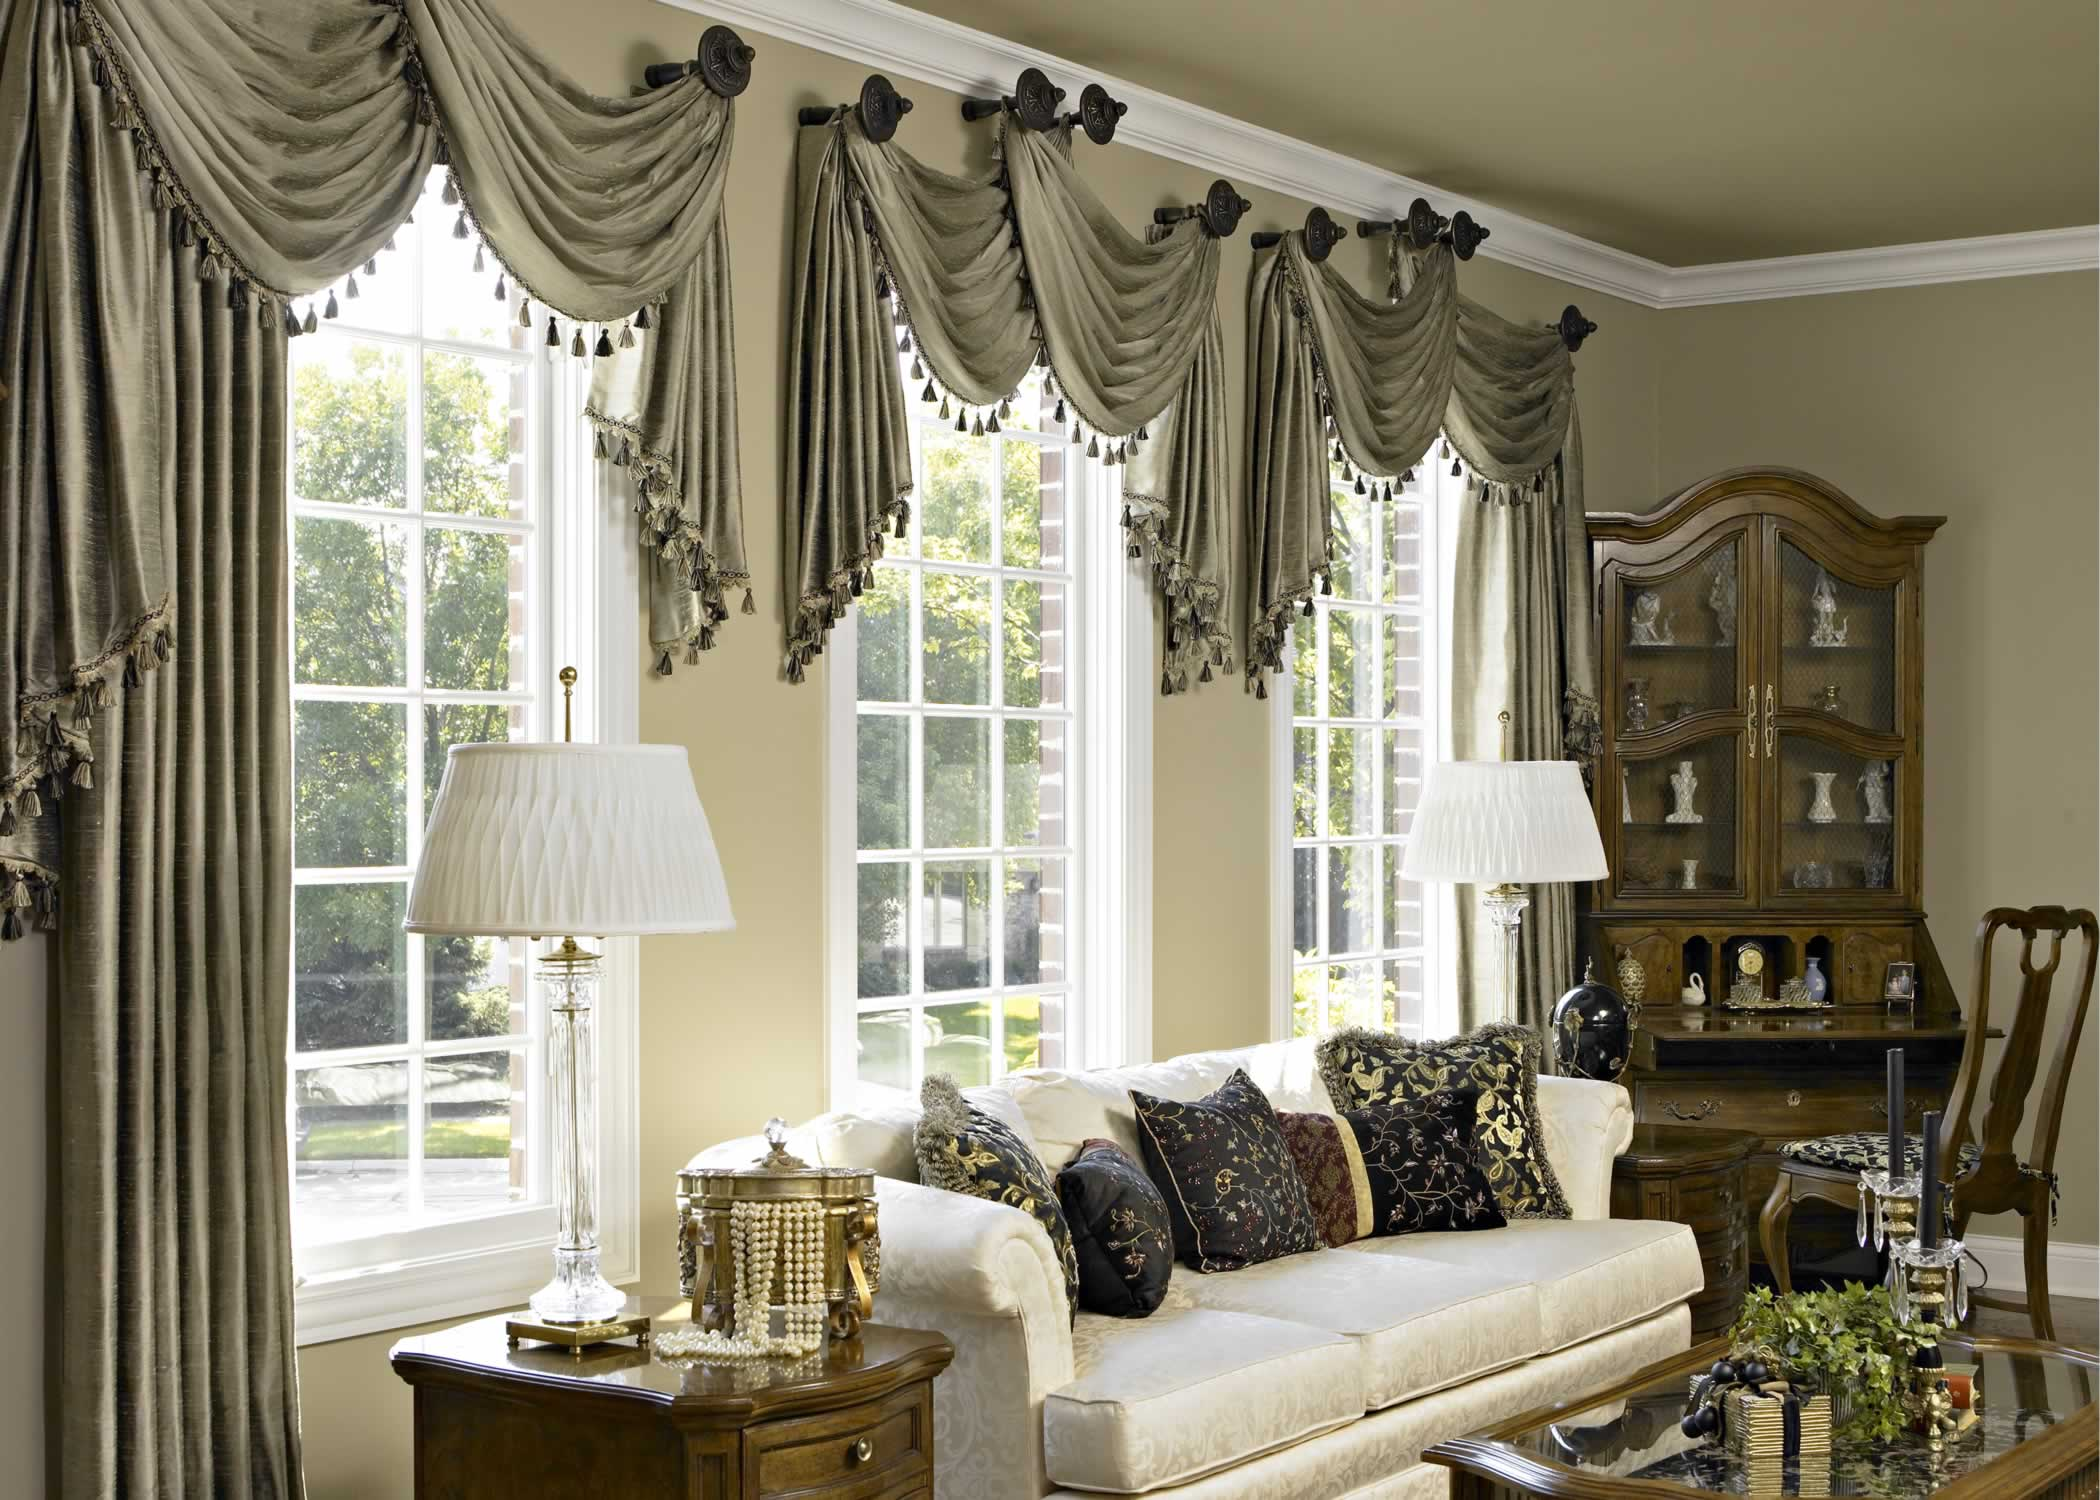 Exceptionnel Luxury Living Room With Window Treatment Ideas